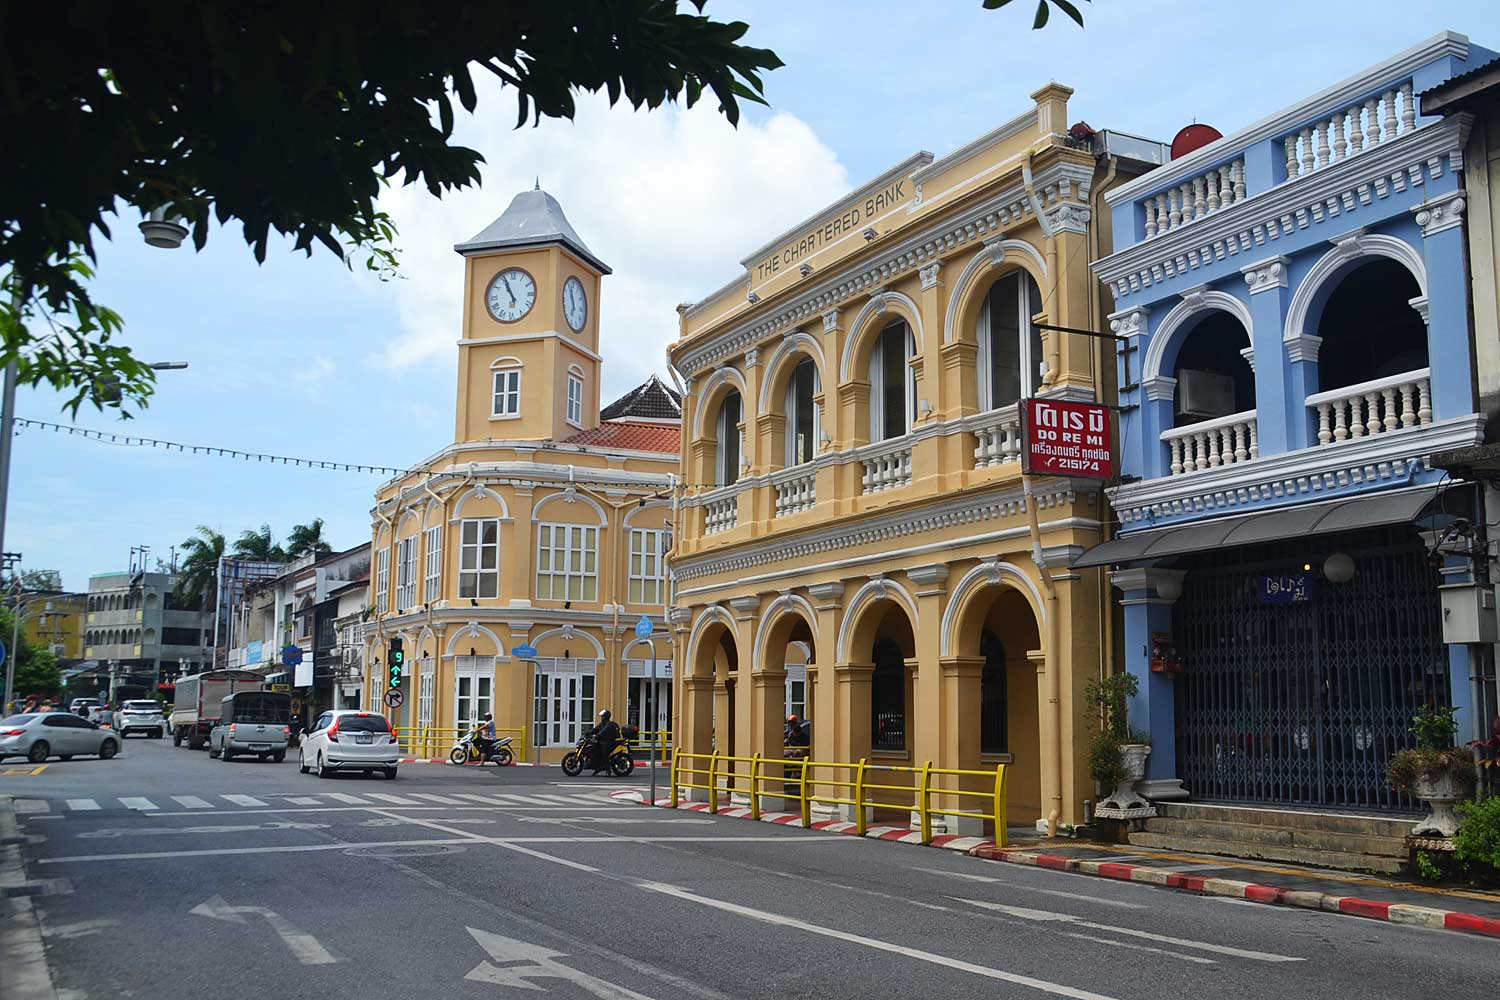 Heritage buildings line the streets in central Phuket's Old Town. The province is promoting its architectural past as an added attraction for visitors. (Photos by Achadtaya Chuenniran)